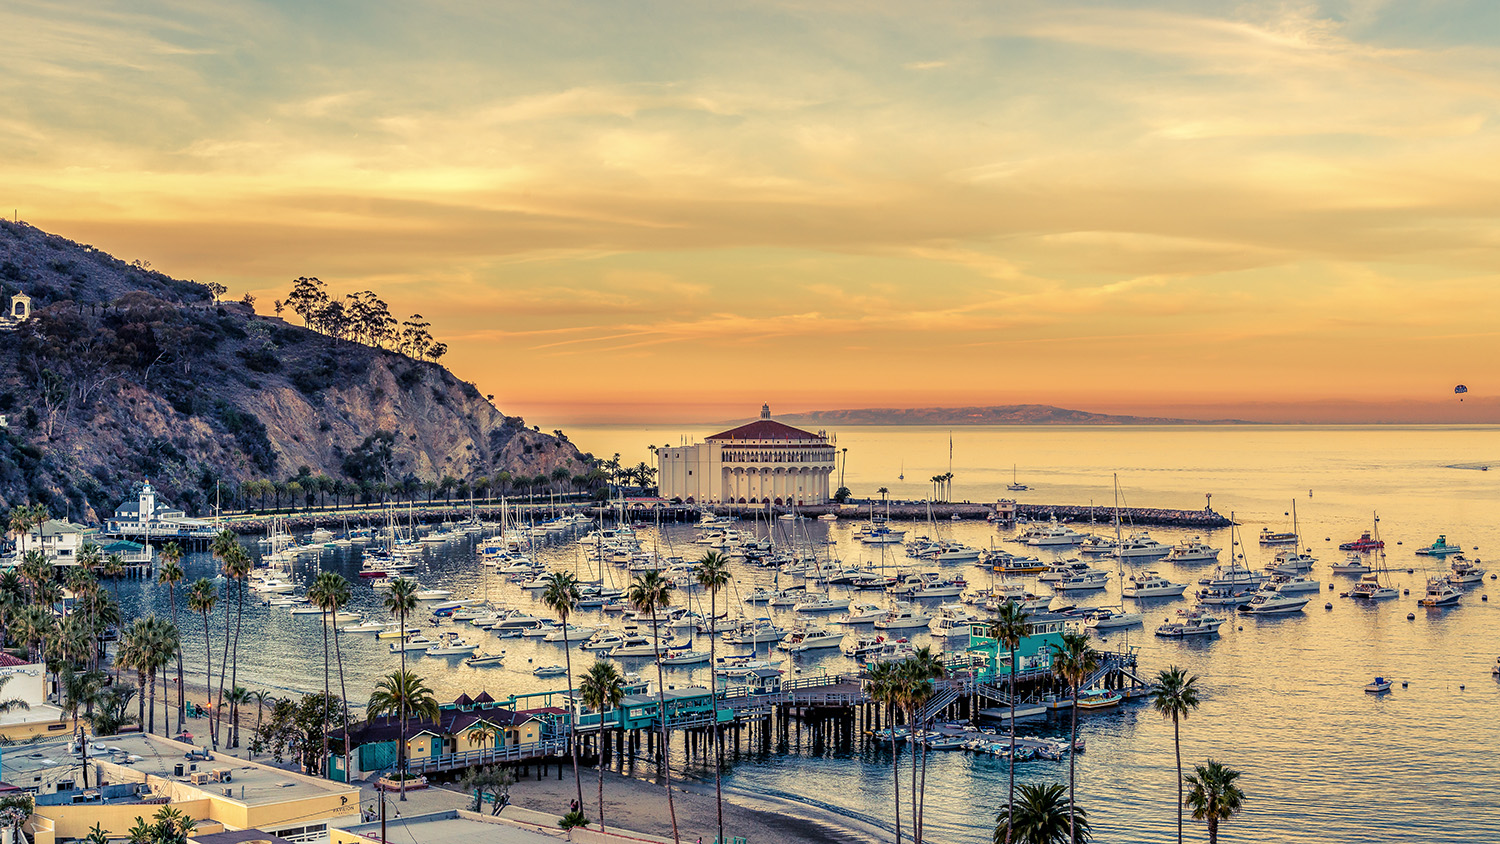 Love Catalina Island, the Catalina Island Tourism Authority